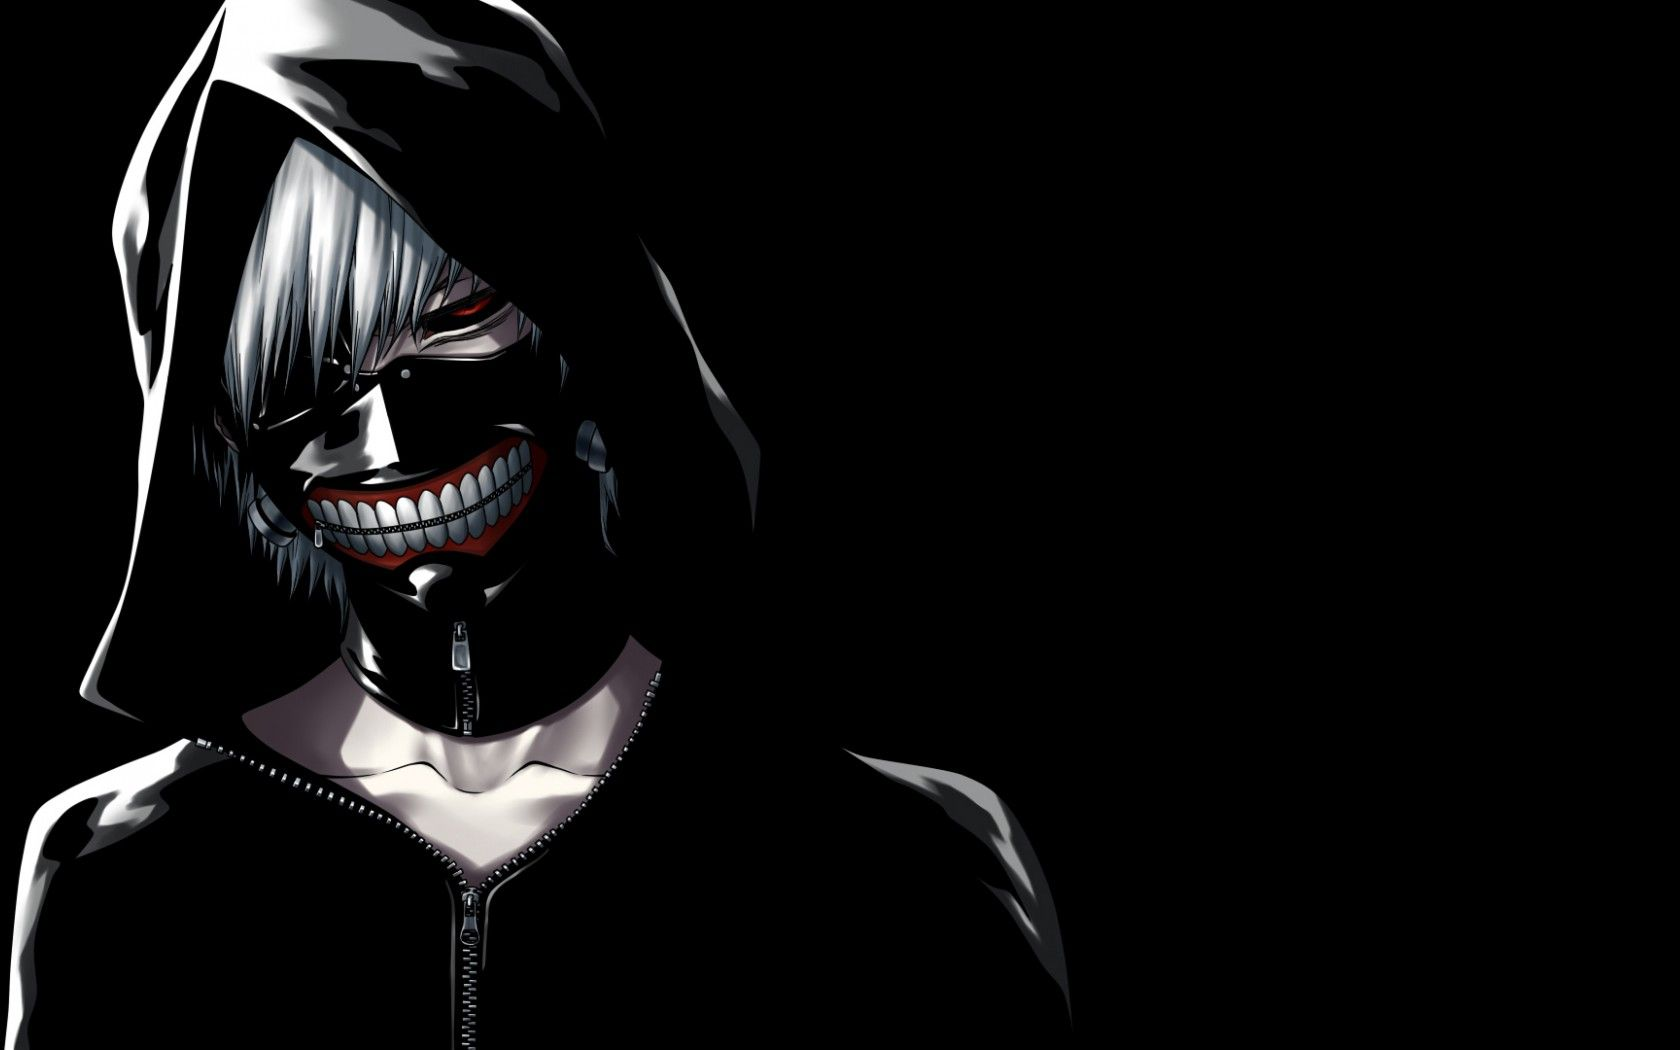 Hd wallpaper anime - The 25 Best Tokyo Ghoul Wallpaper Hd Ideas On Pinterest Tokyo Ghoul Hd Kaneki Wallpaper Hd And Tokyo Ghoul